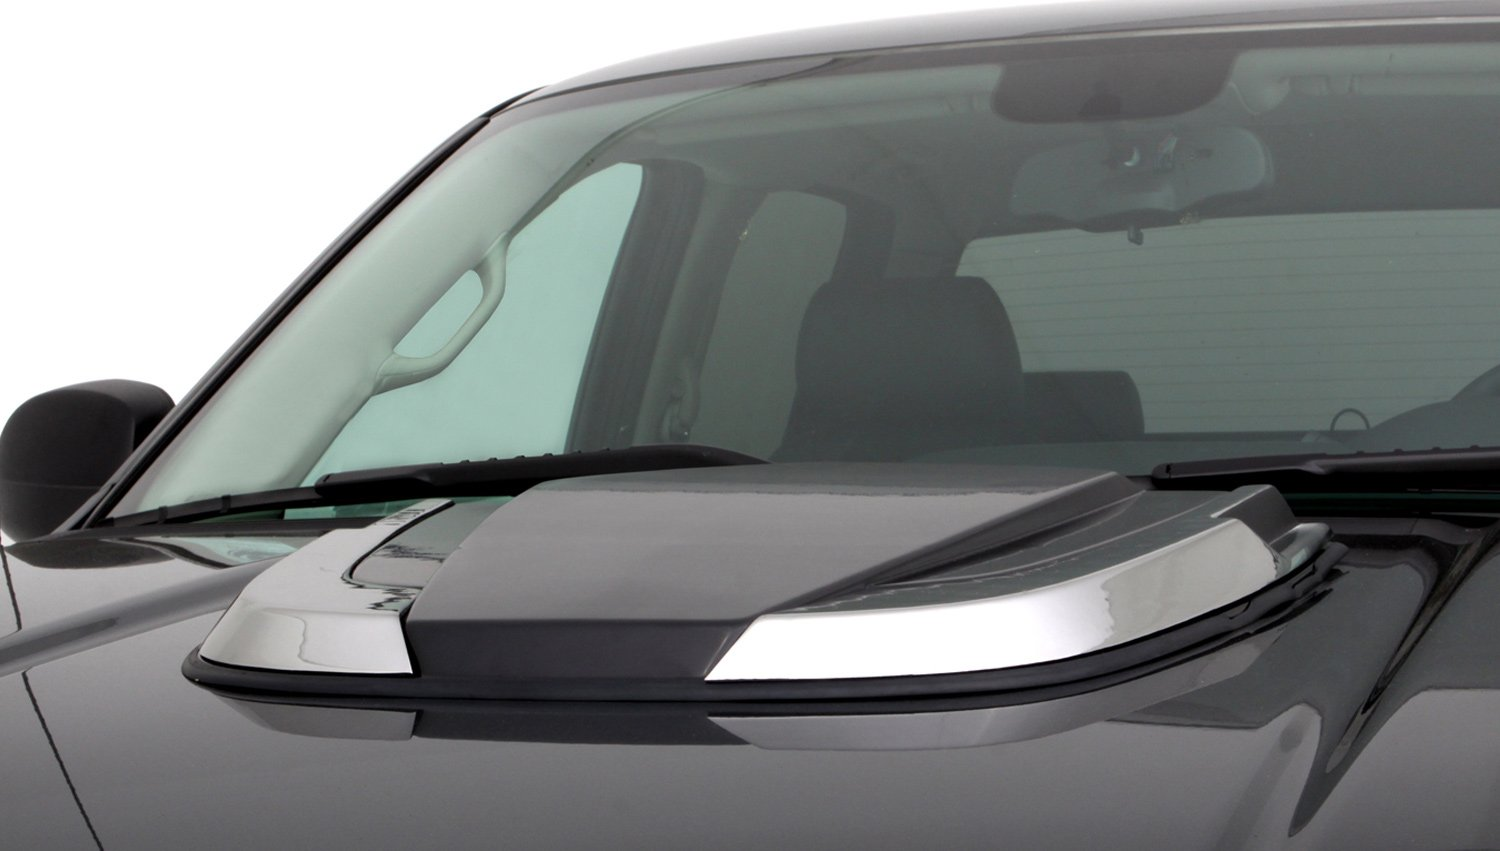 Lund Hood Scoop together with 2013 4runner Roof Rack in addition 1994 Toyota Pickup Front Bumper furthermore 2016 Toyota Ta a Pocket Style Fender Flares P 6284 additionally Toyota Matrix Accessories. on toyota sienna accessories aftermarket